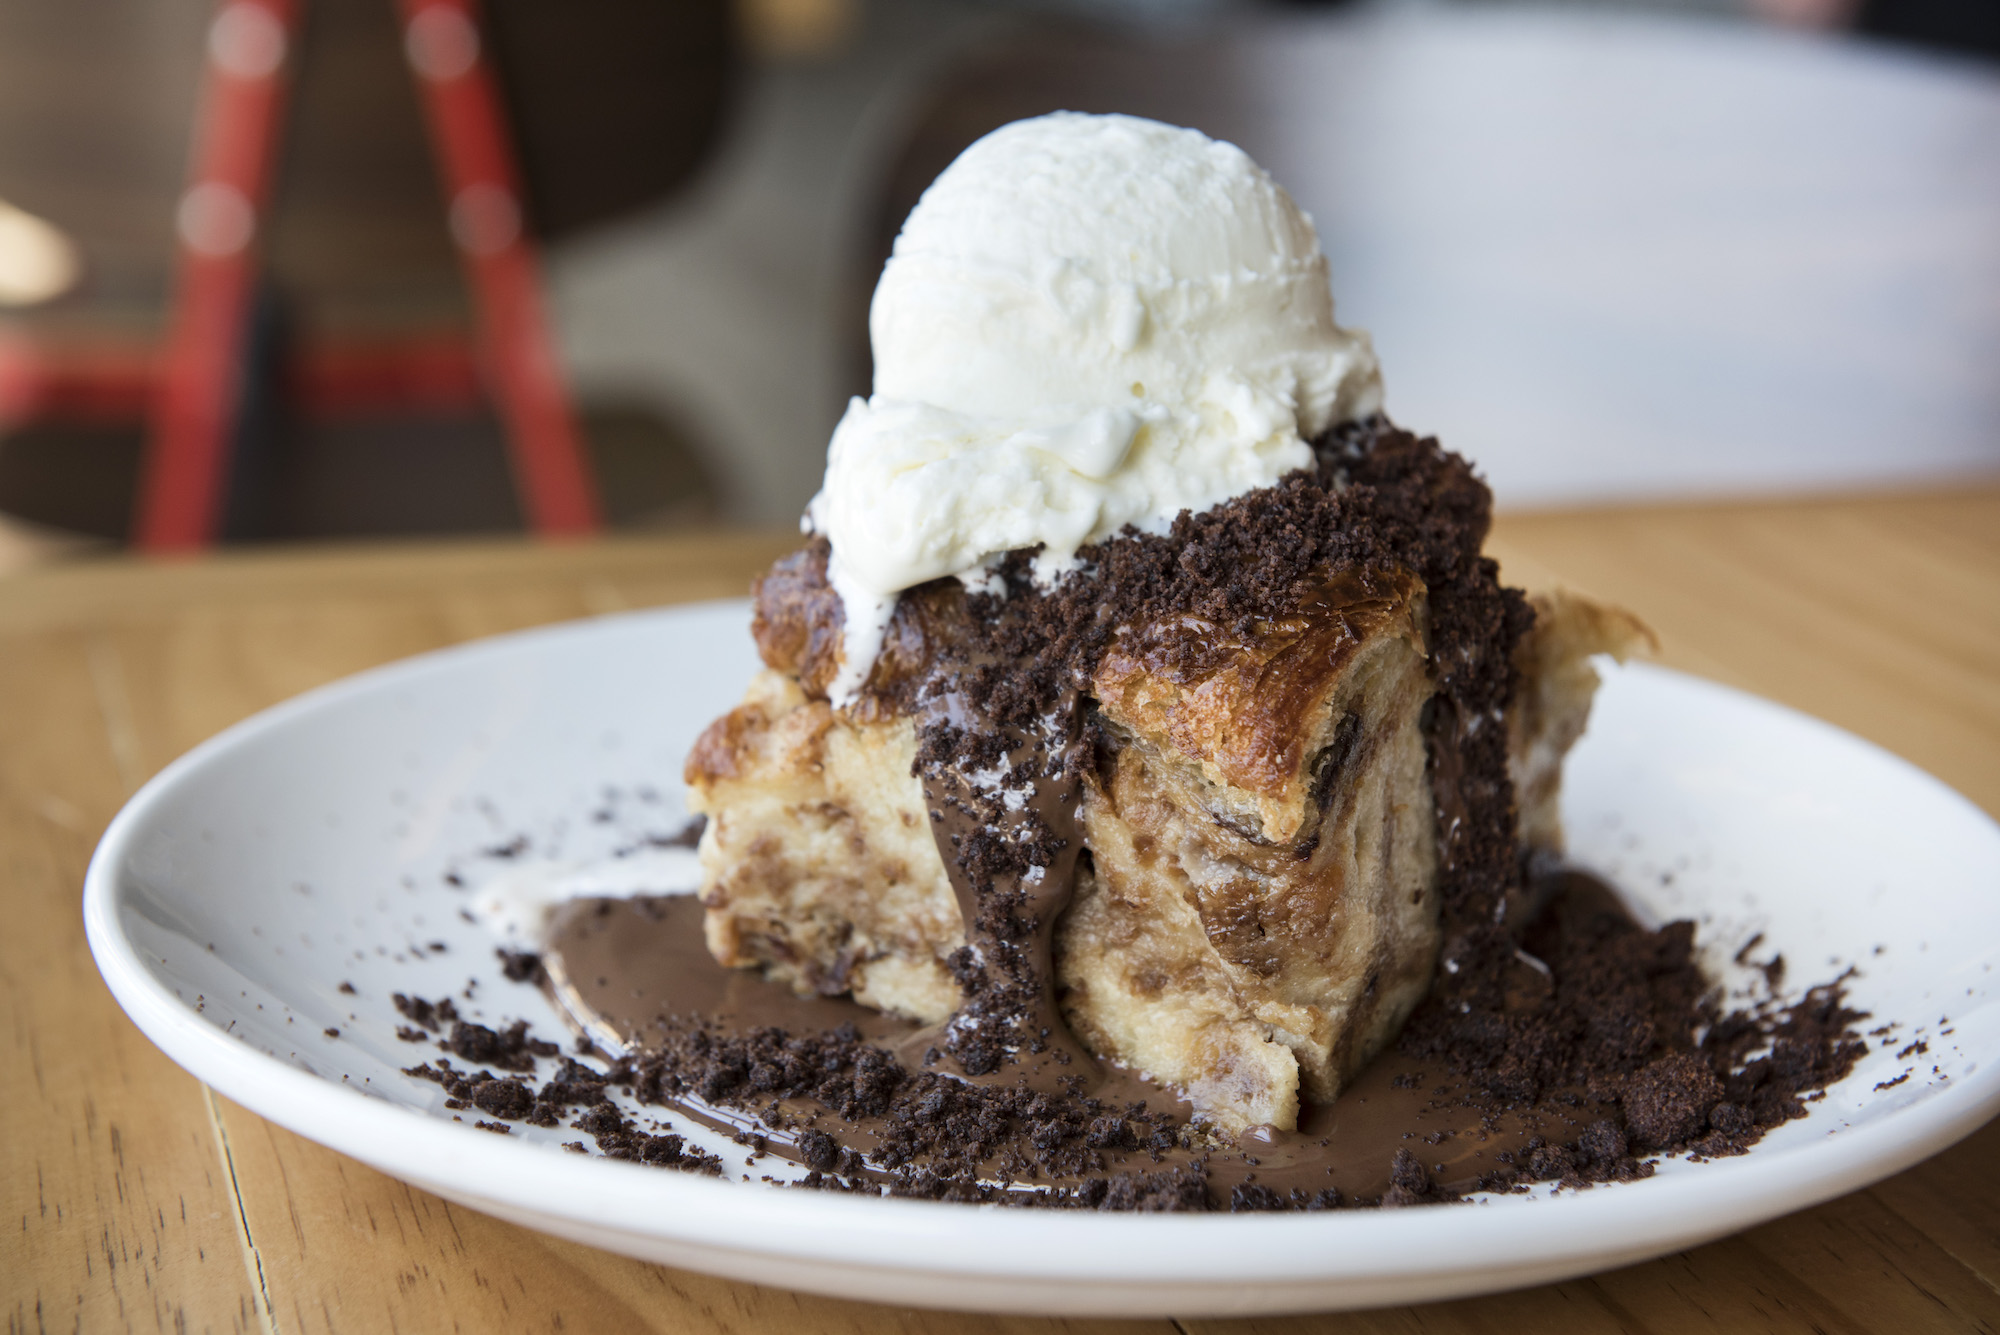 Beebe's_Nutella Bread Pudding 01 - Liz Clayman